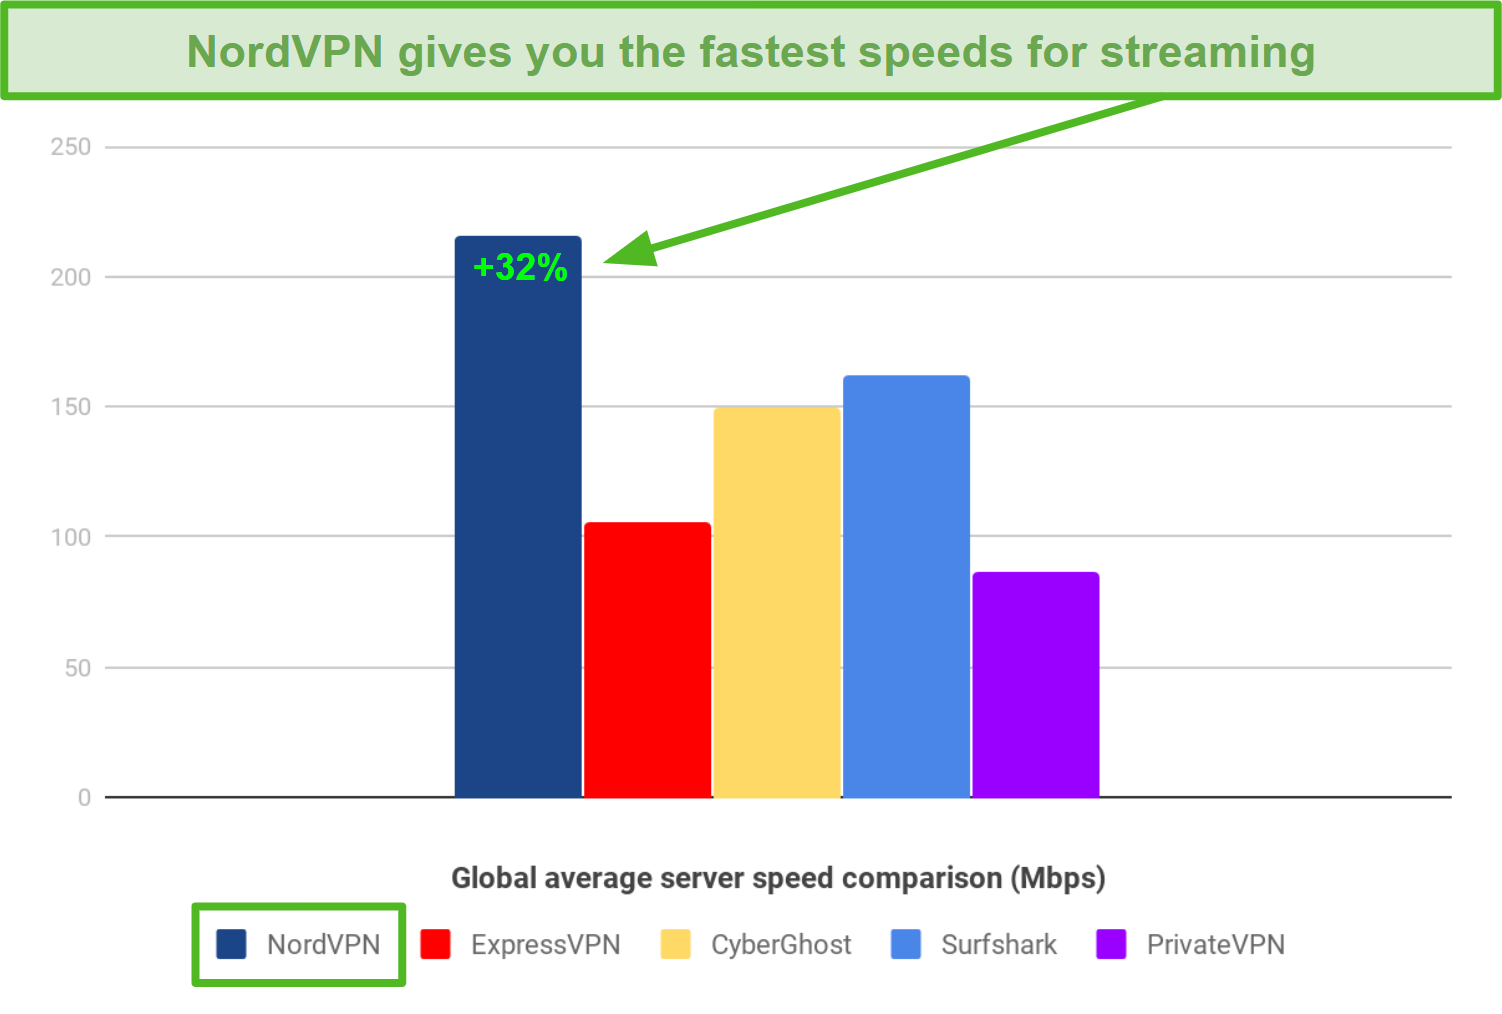 VPN speed comparison chart between NordVPN, ExpressVPN, CyberGhost, Surfshark, and PrivateVPN, with NordVPN being the fastest at over 200 Mbps